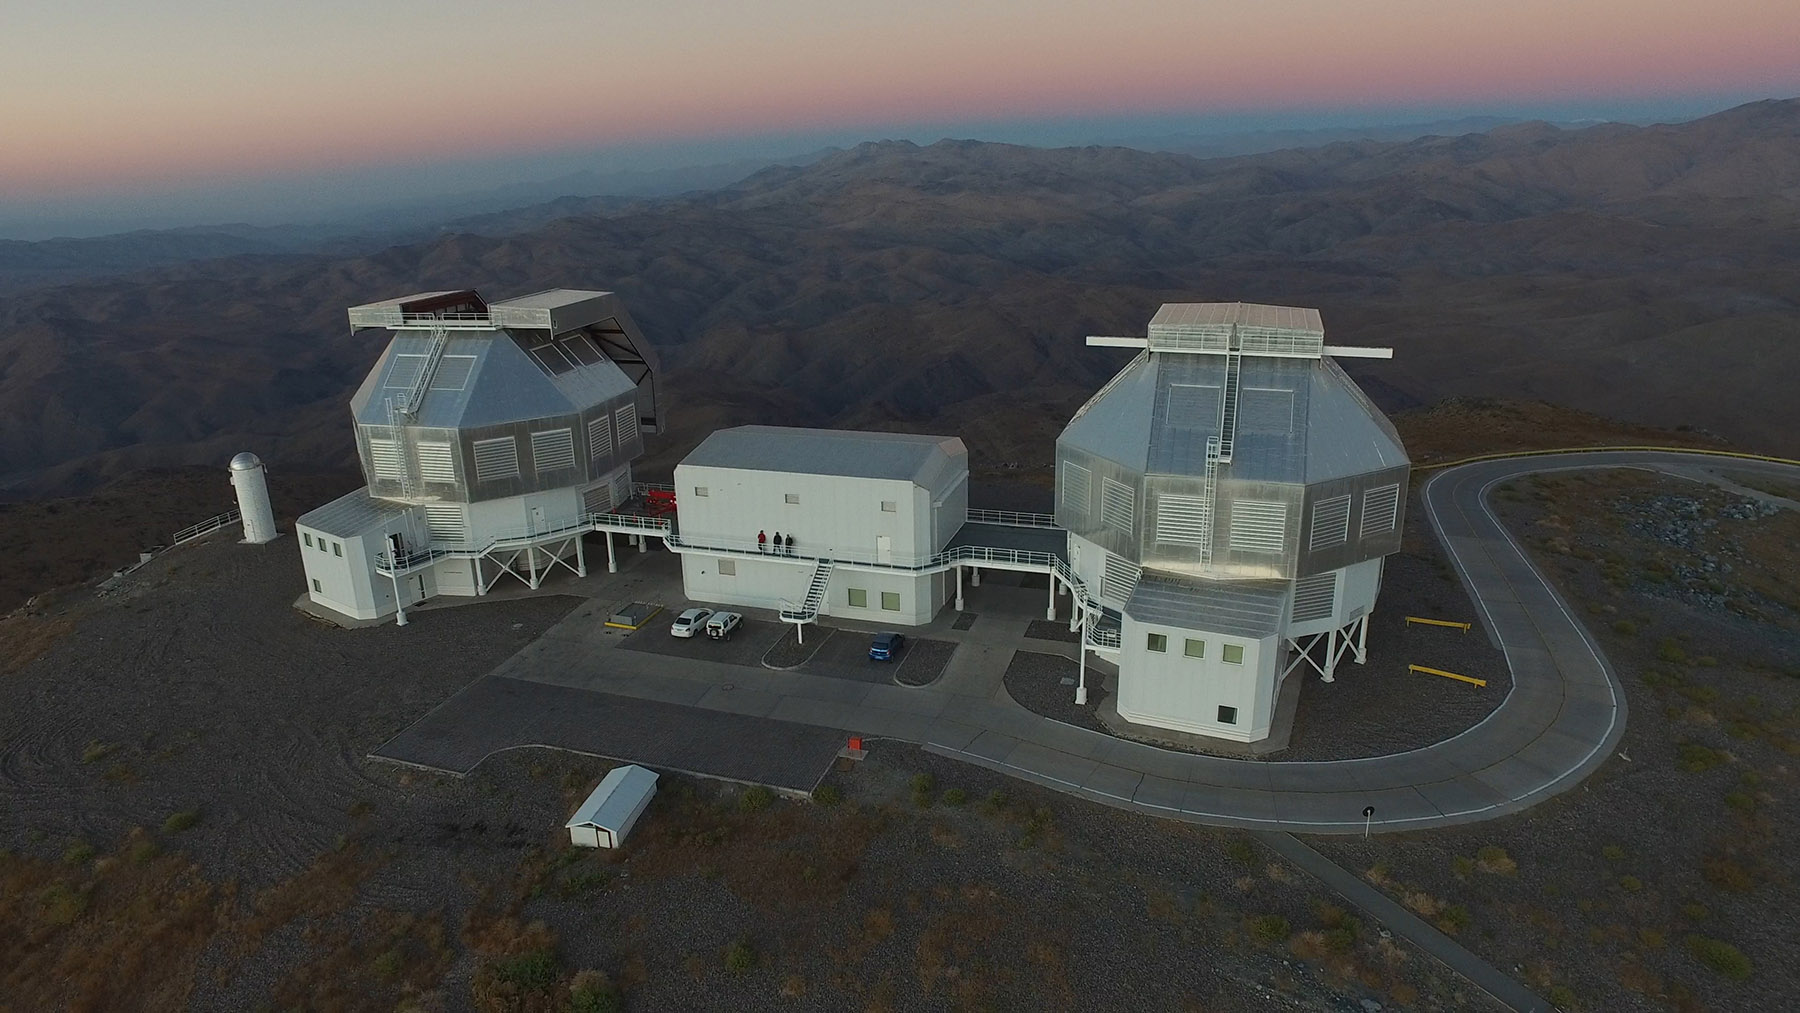 Magellan telescopes at sunset from the air